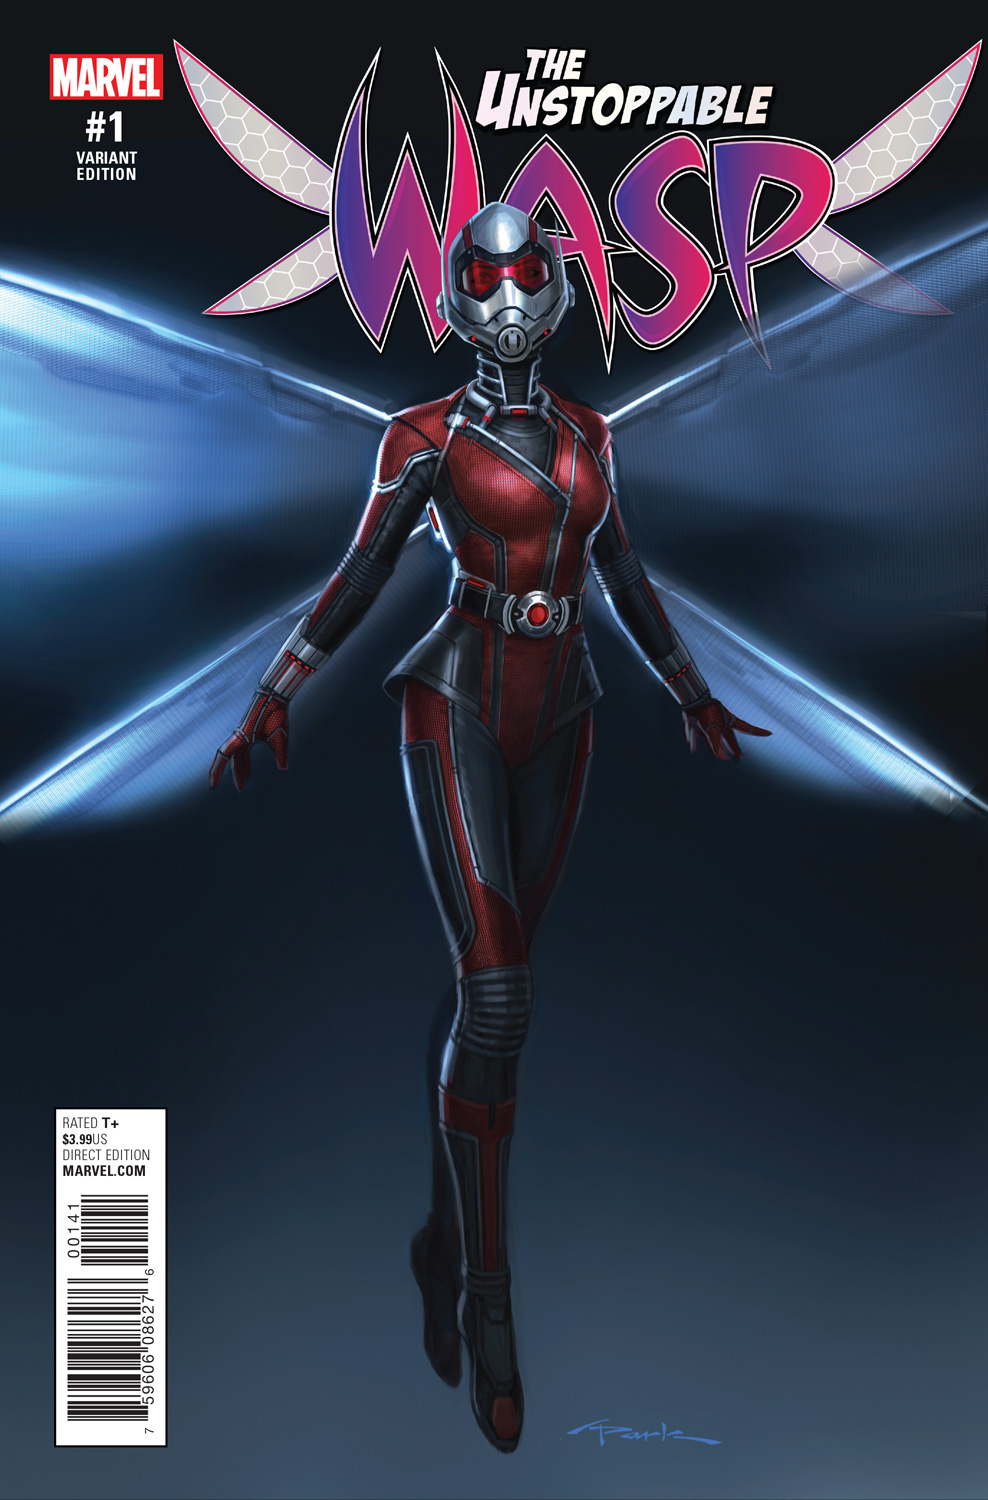 The Unstoppable Wasp #1 Review: The Buzz Is Real